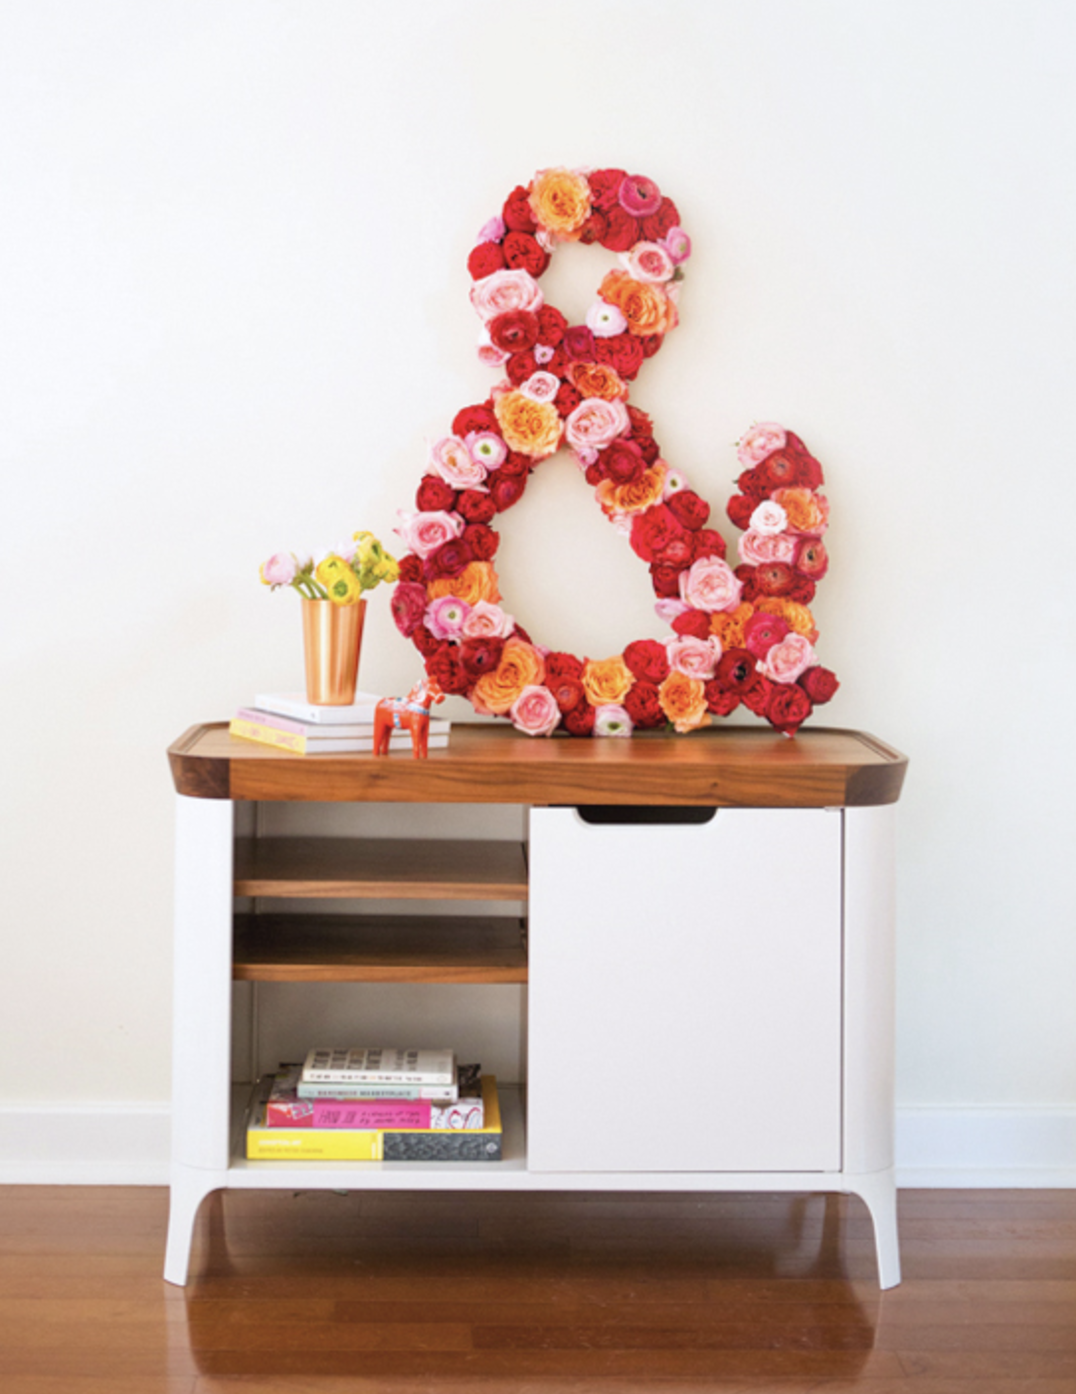 DIY Giant Floral Ampersand spring decor @ HipMamasPlace.com